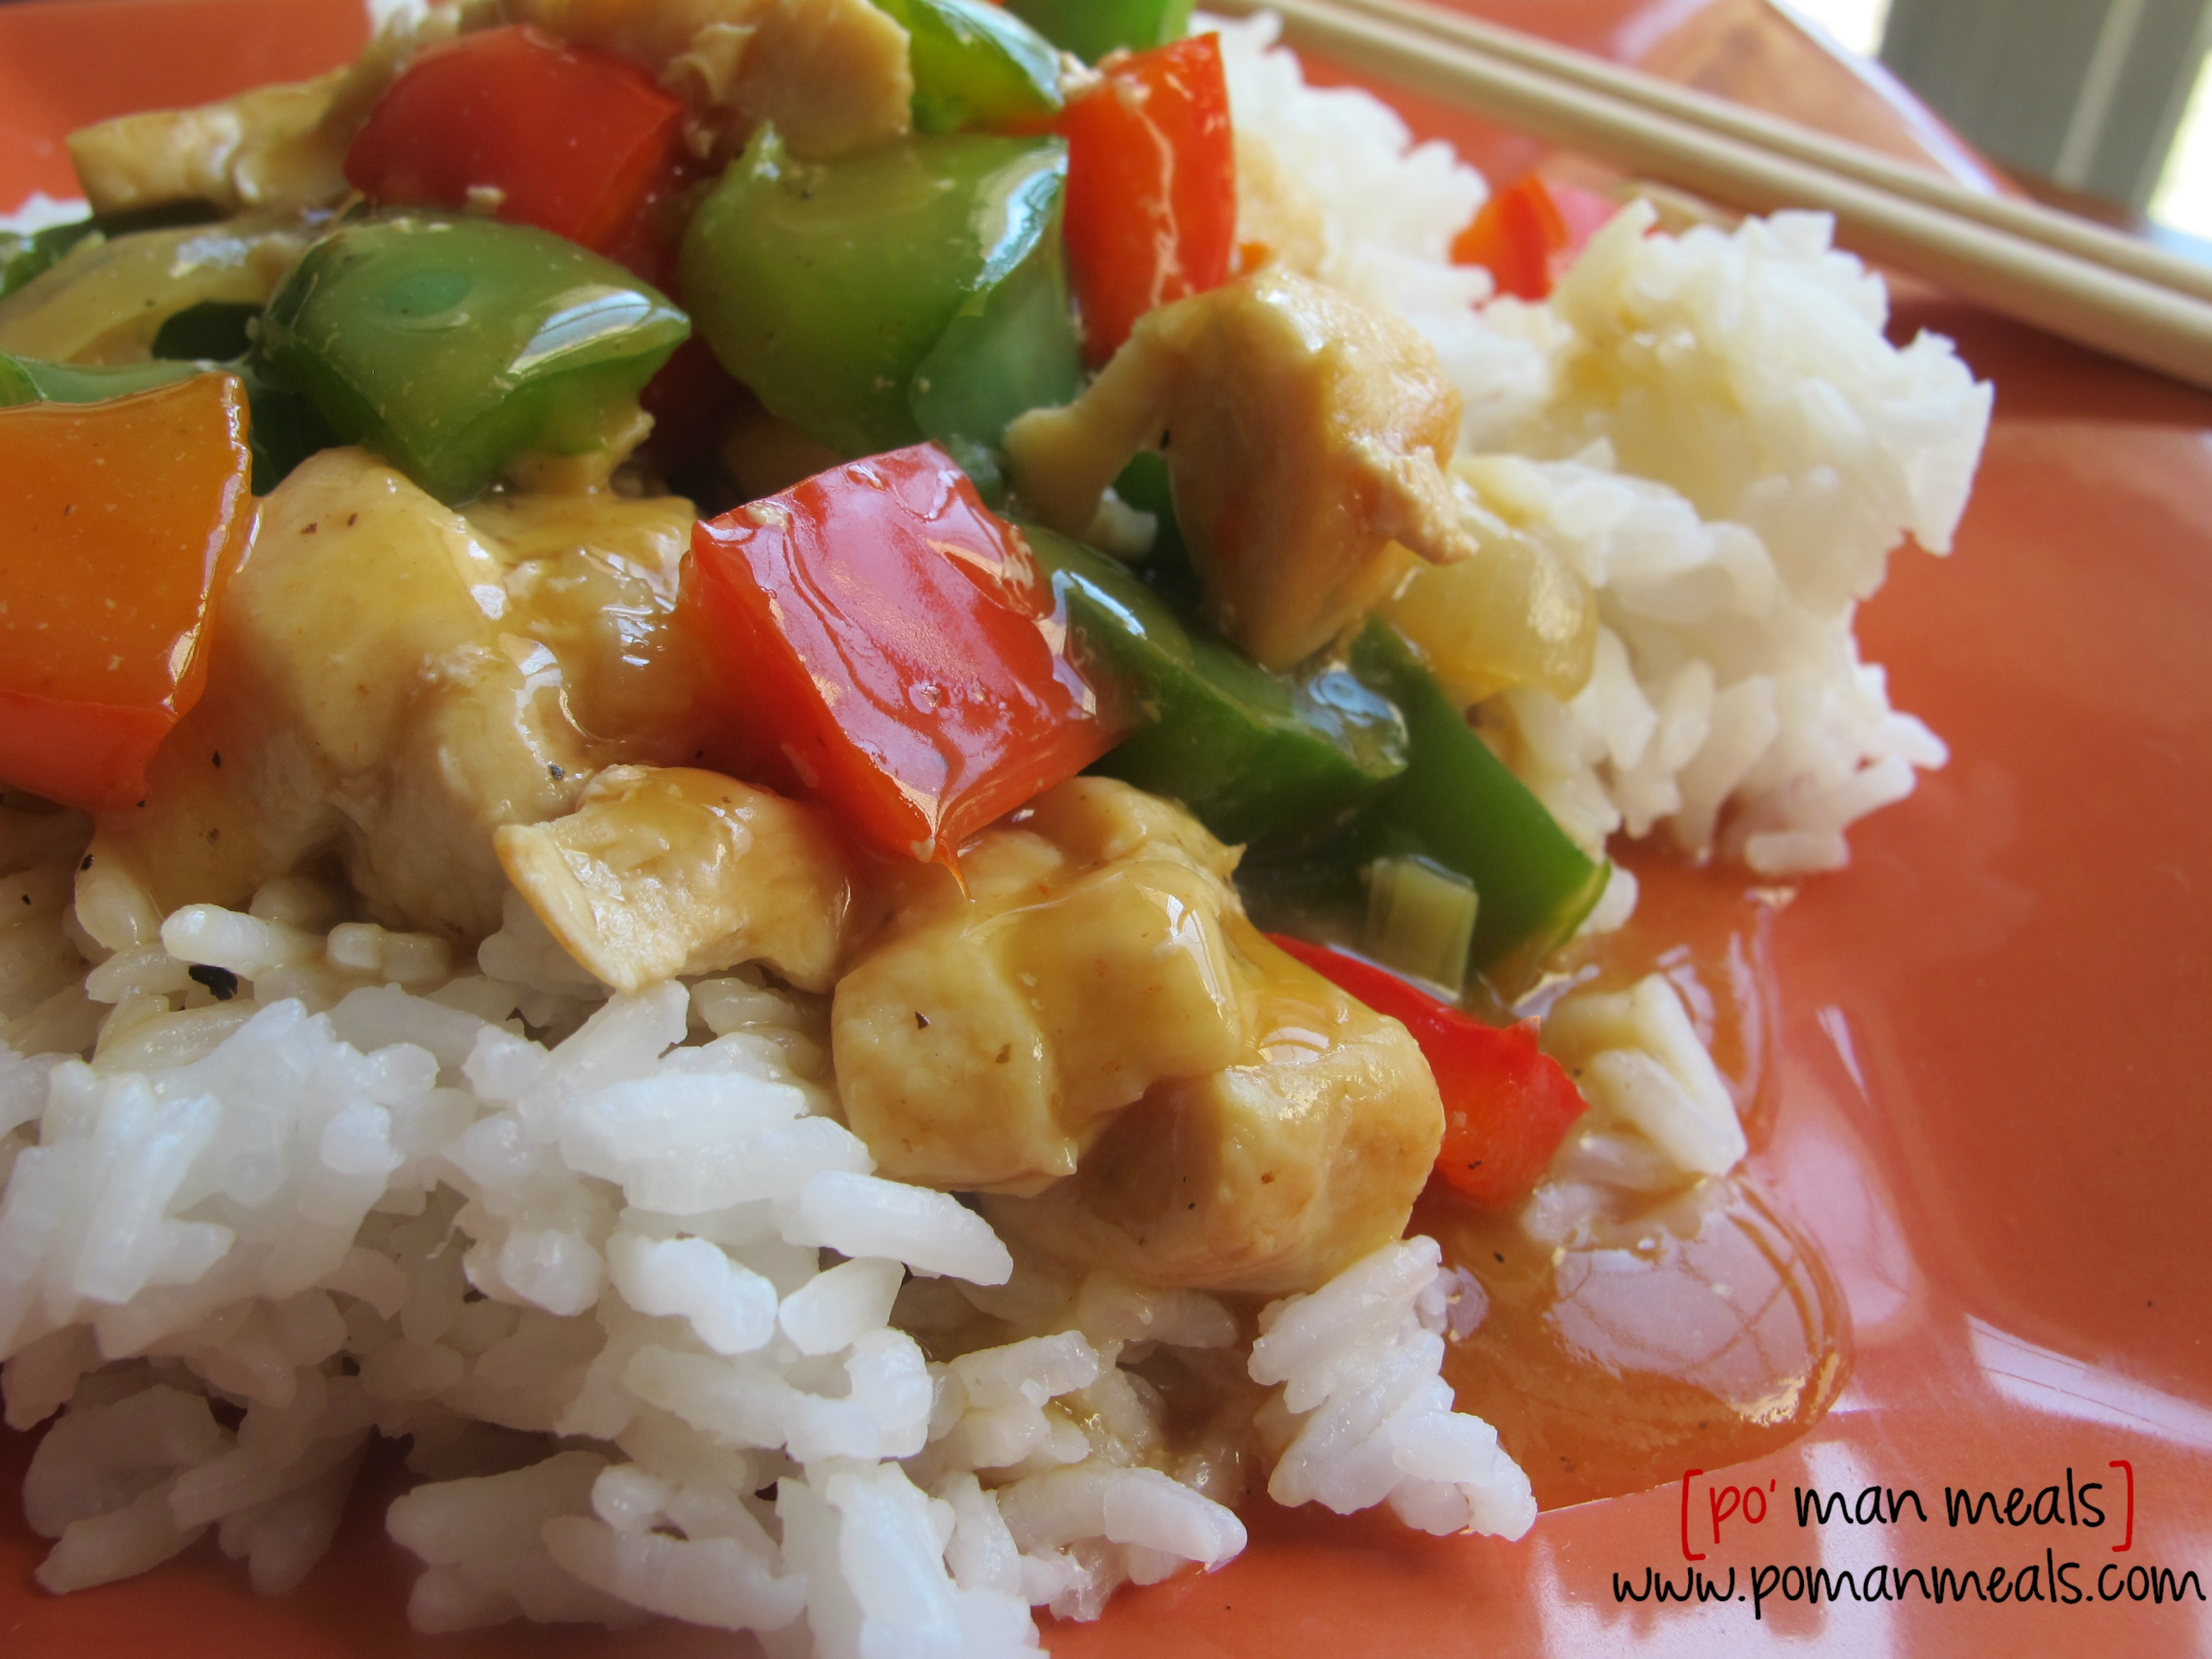 po' man meals - bell pepper chicken stir-fry